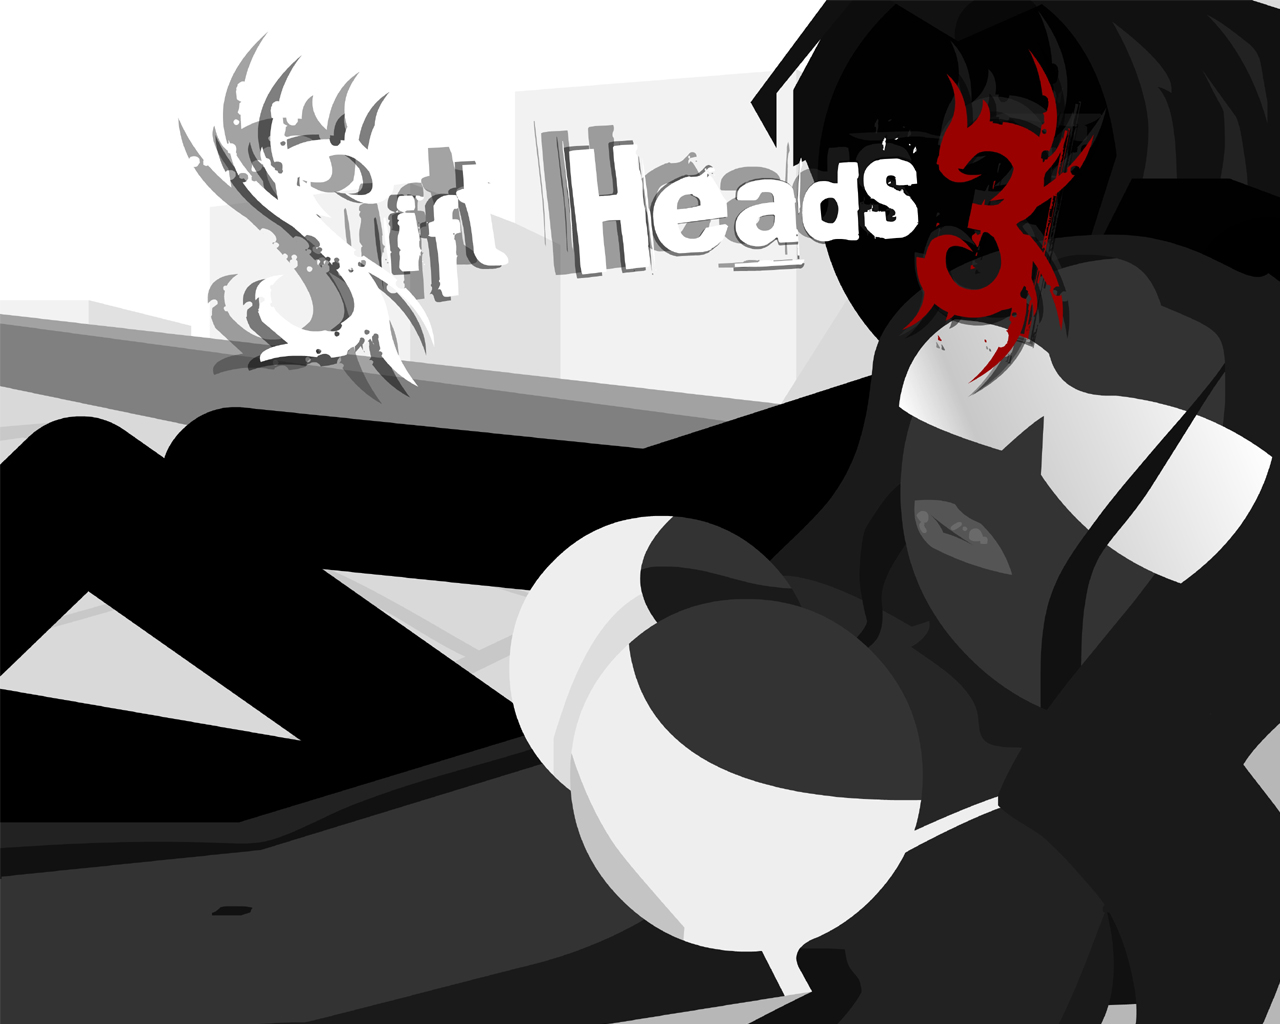 Sift heads games